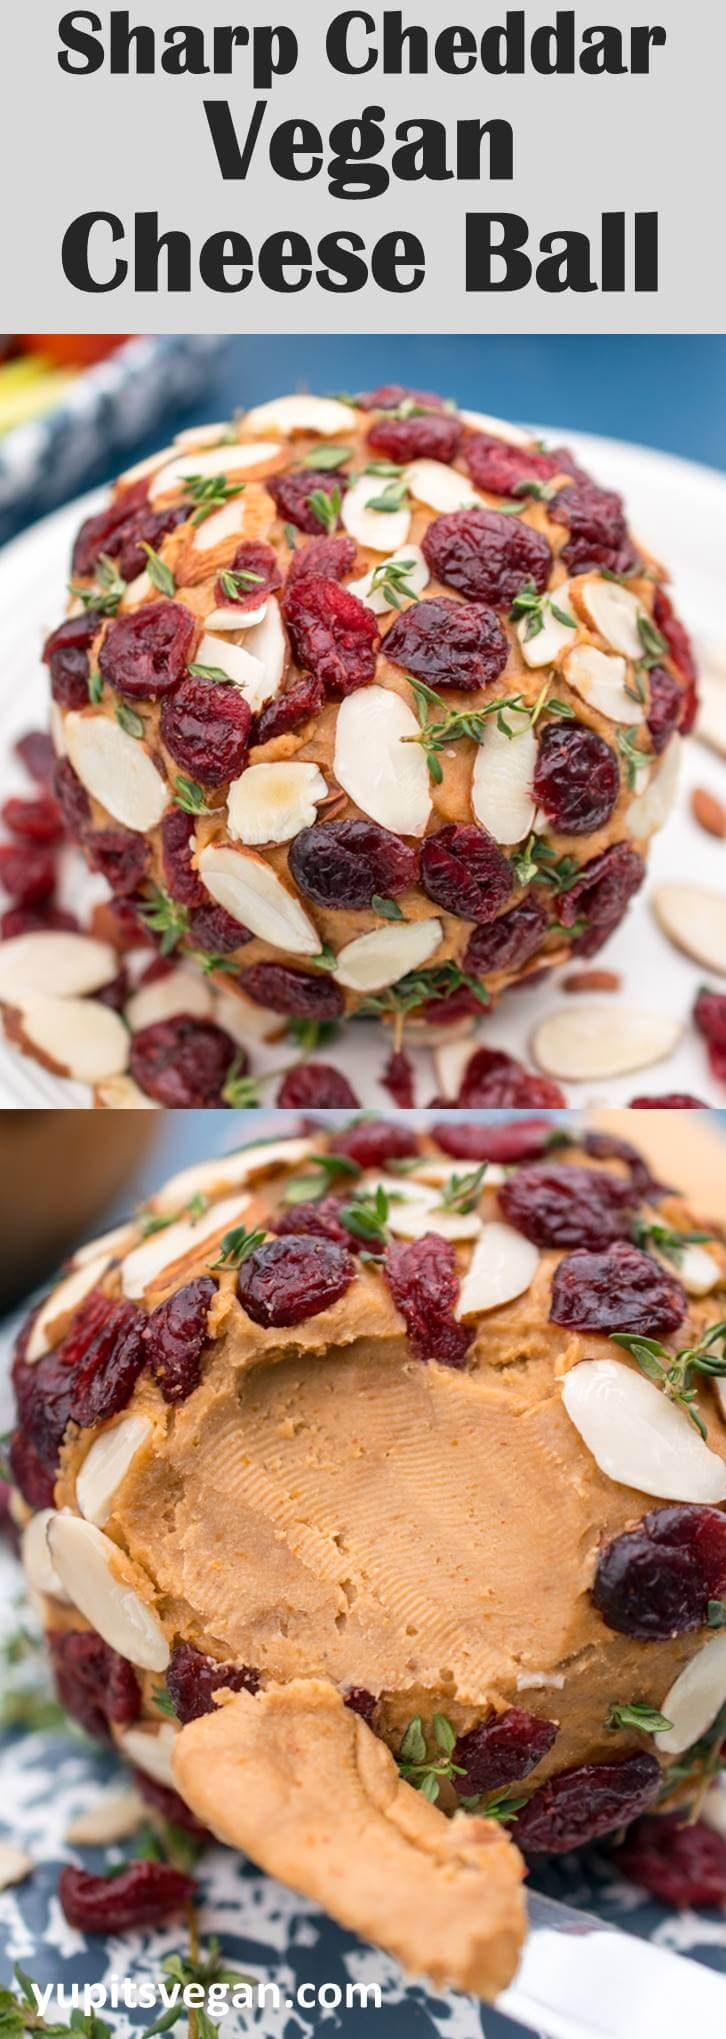 Smoky Vegan Cheese Ball Made With Cashews Coconut Oil And Savory Seasonings Decorated With Dried Cranberries An Vegan Christmas Recipes Vegan Cheese Recipes